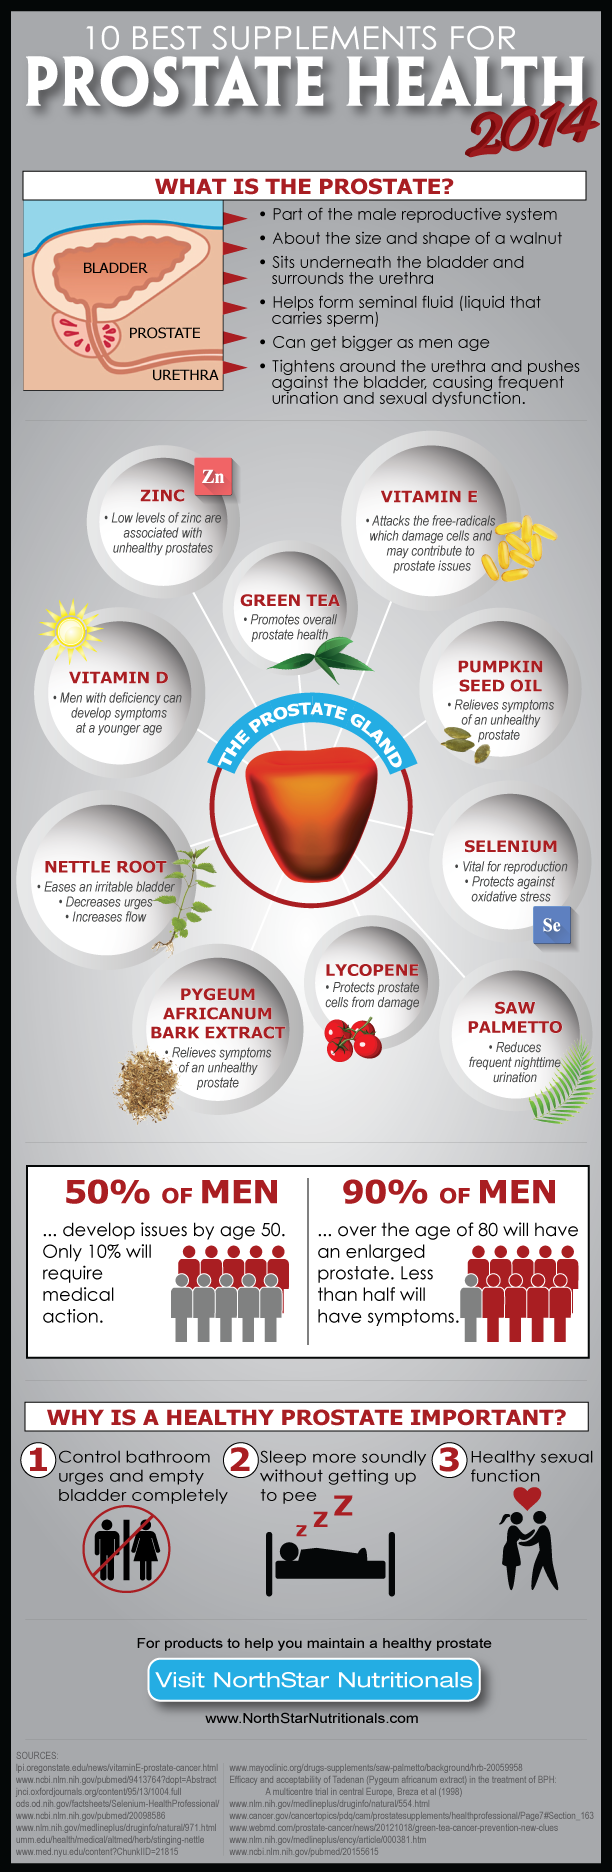 prostate health supplements infographic